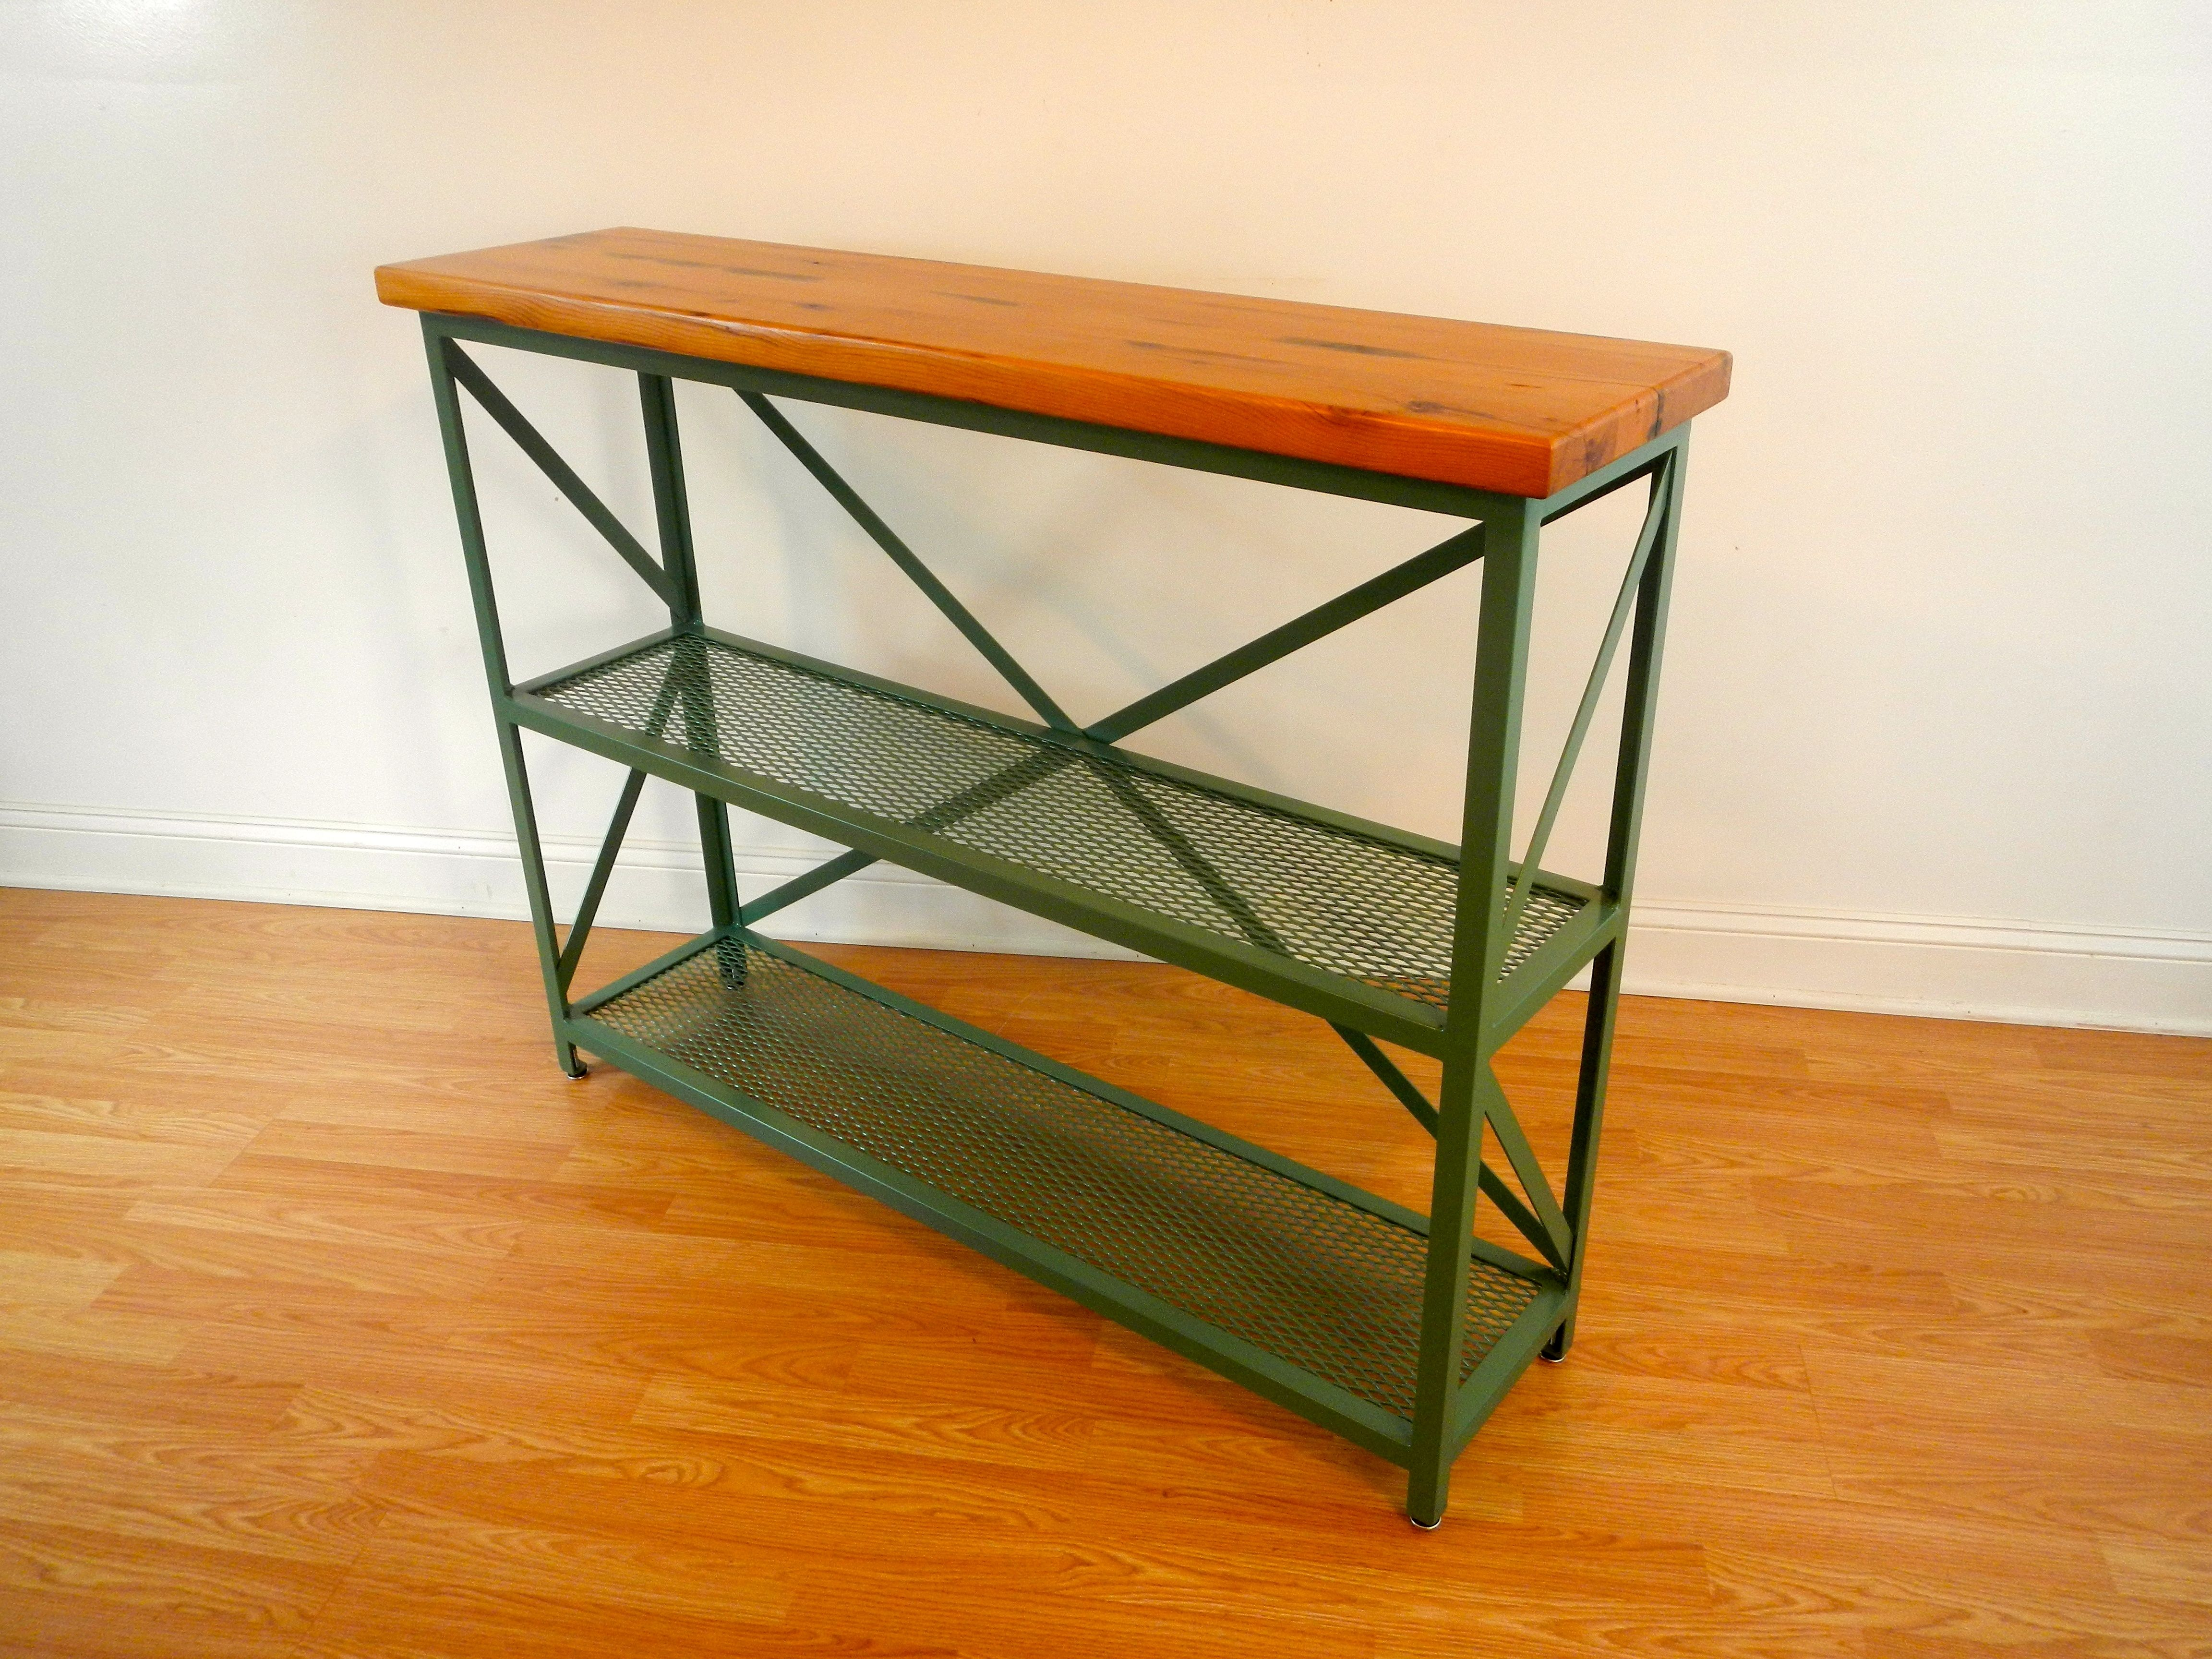 Handmade Welded Steel And Reclaimed Wood Console Table